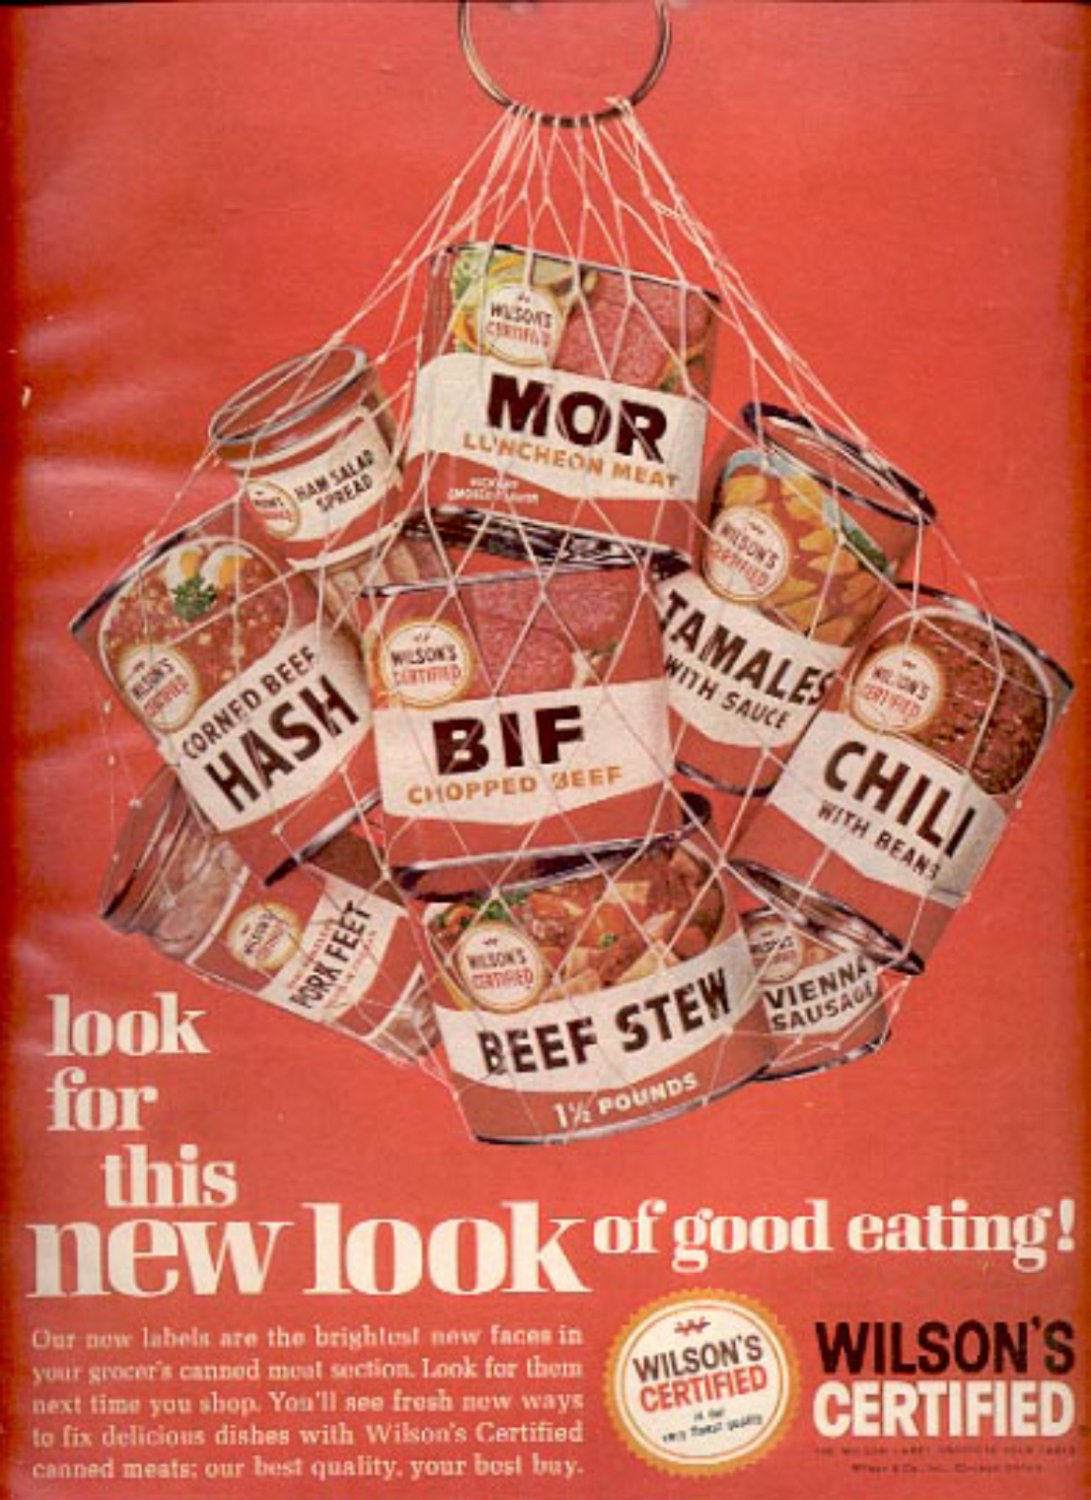 1964  Wilson's Certified canned meats   ad (# 4864)